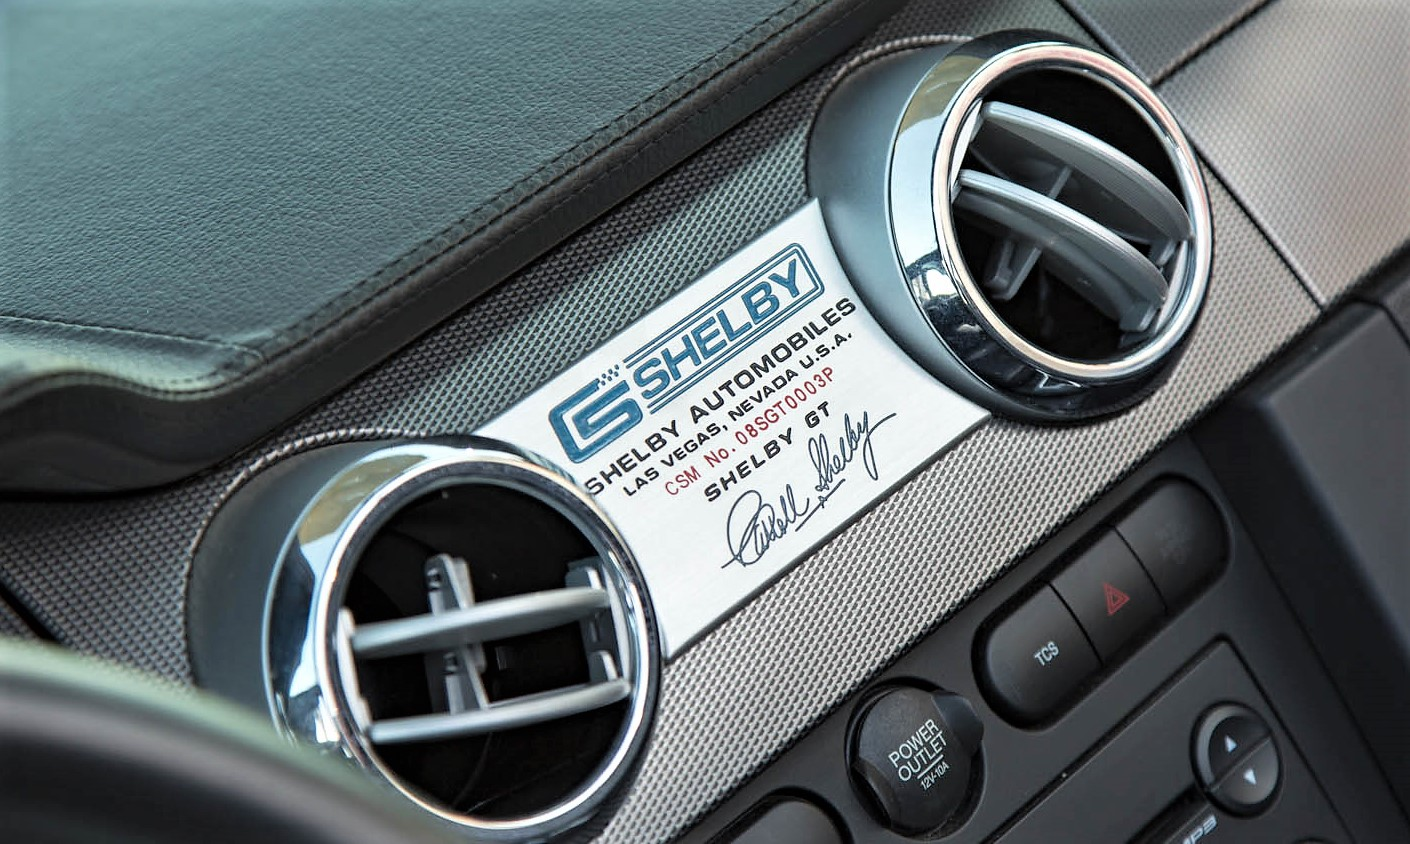 , First 2008 Ford Shelby GT convertible to be auctioned at Barrett-Jackson, ClassicCars.com Journal